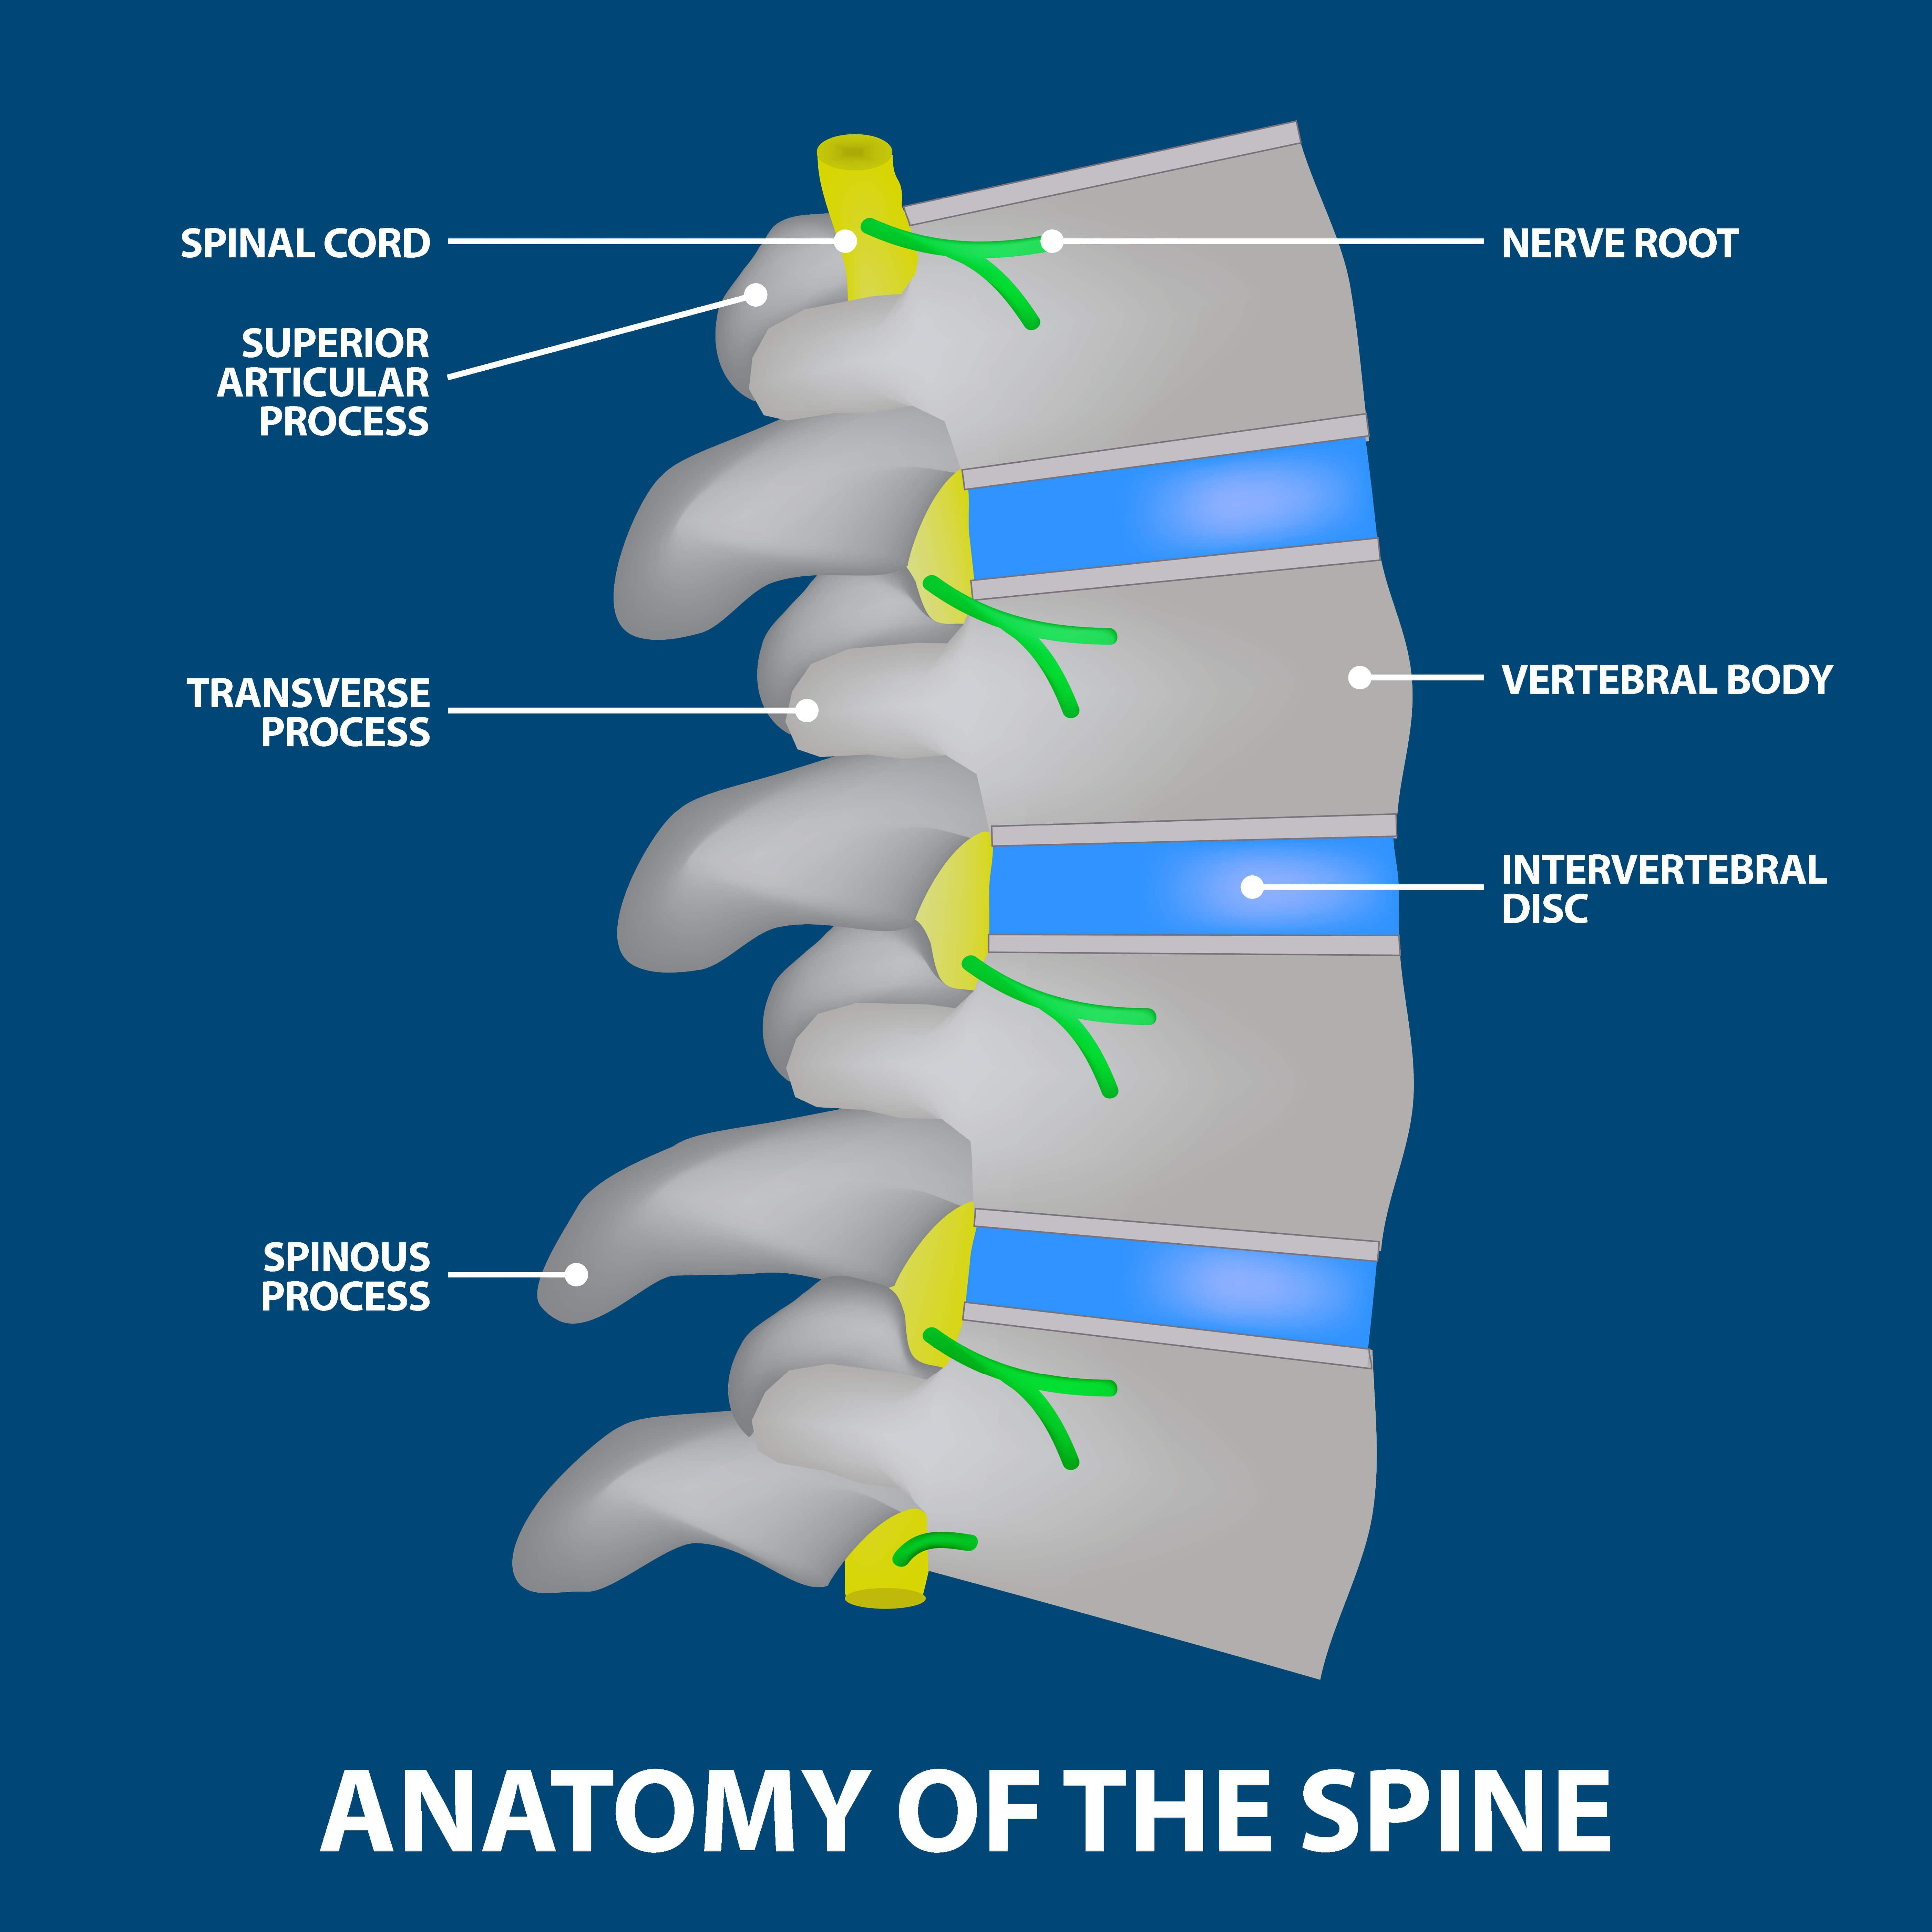 Discitis, the anatomy of the spine graphic